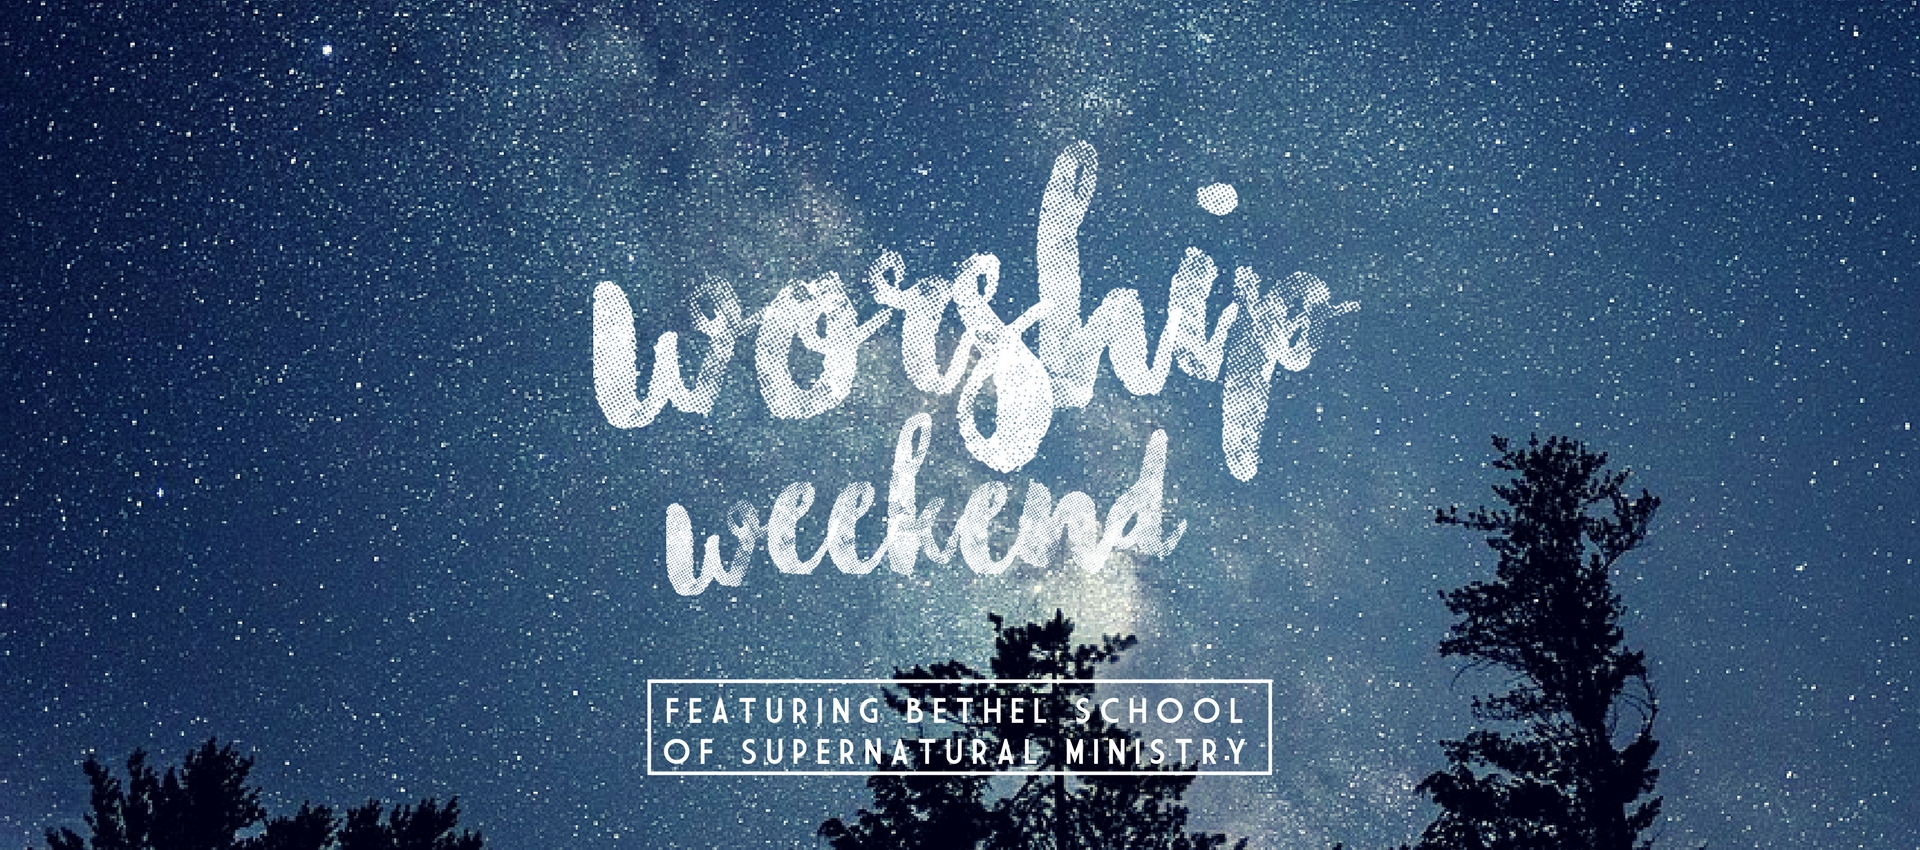 Worship Weekend